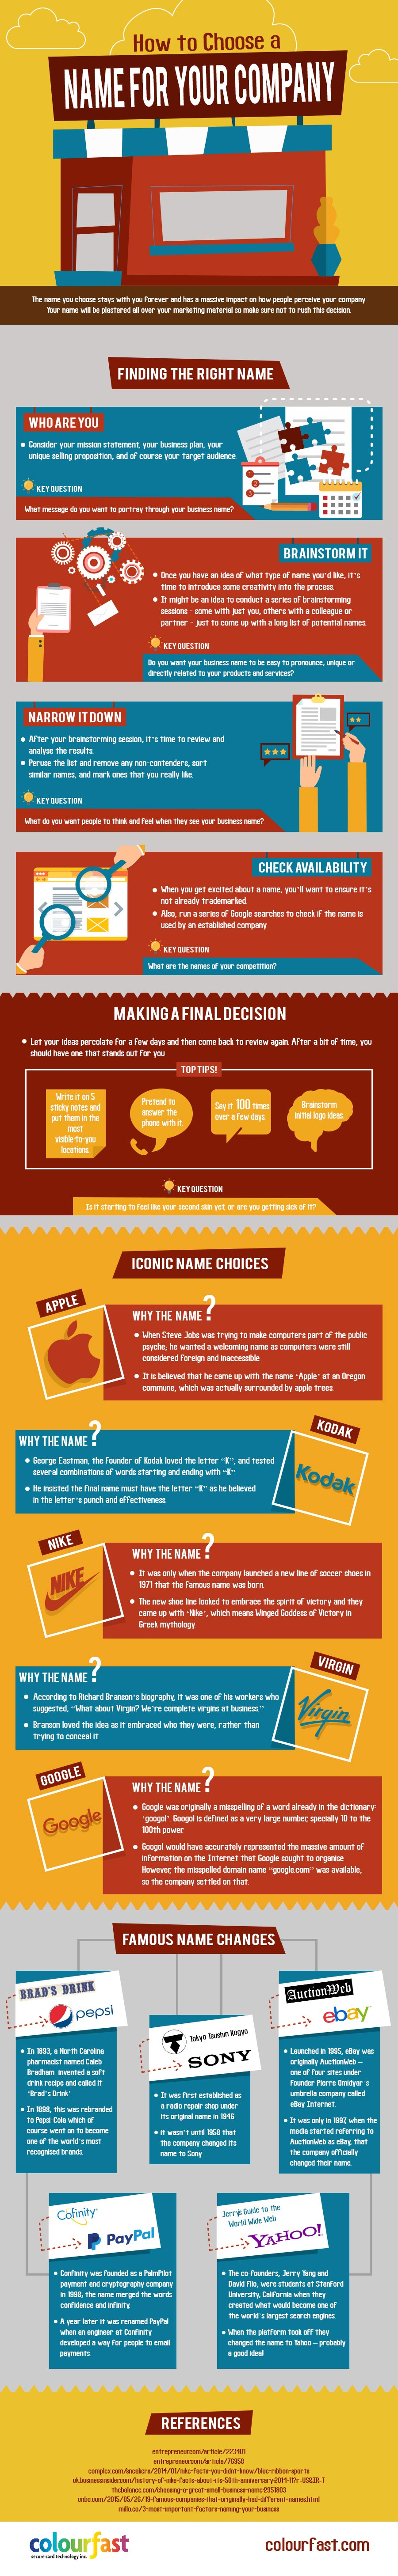 How to Choose a Name for Your Company